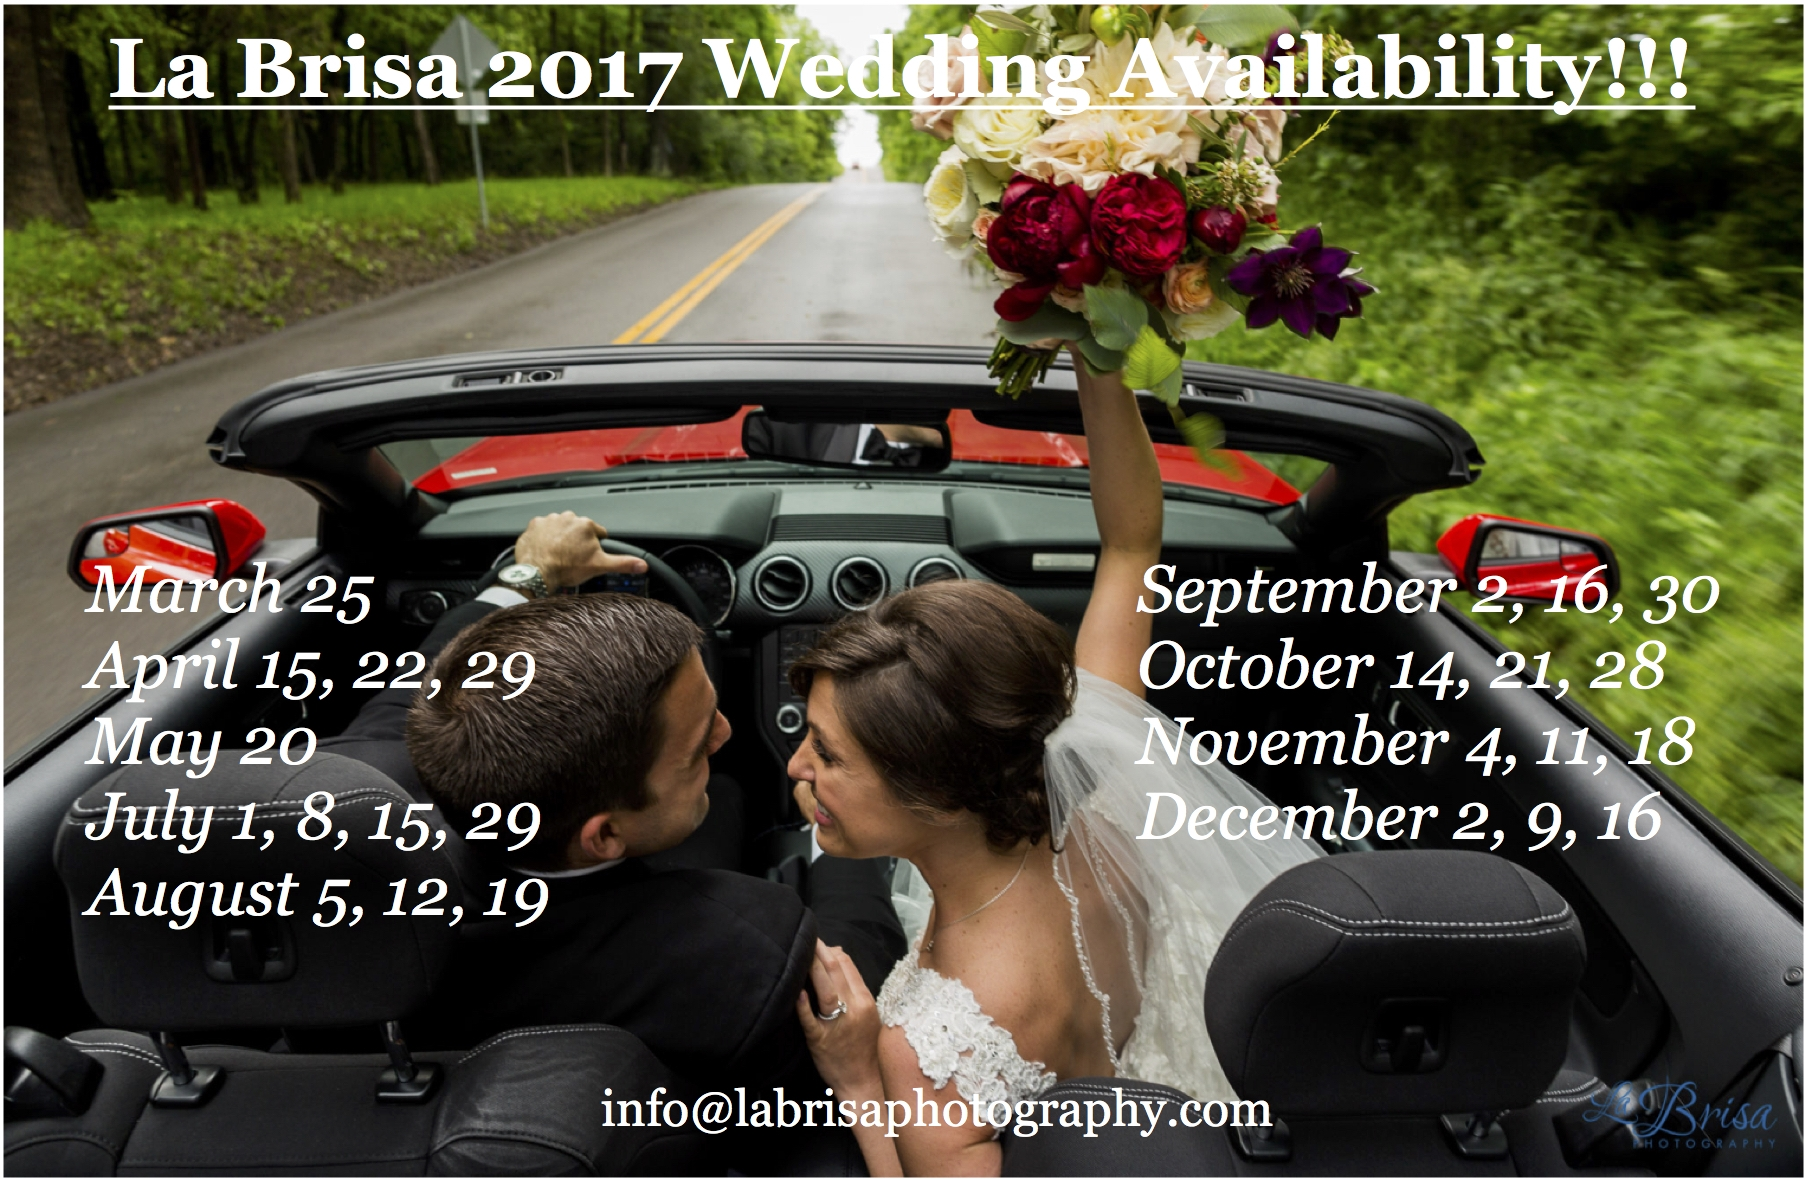 2017-wedding-availability